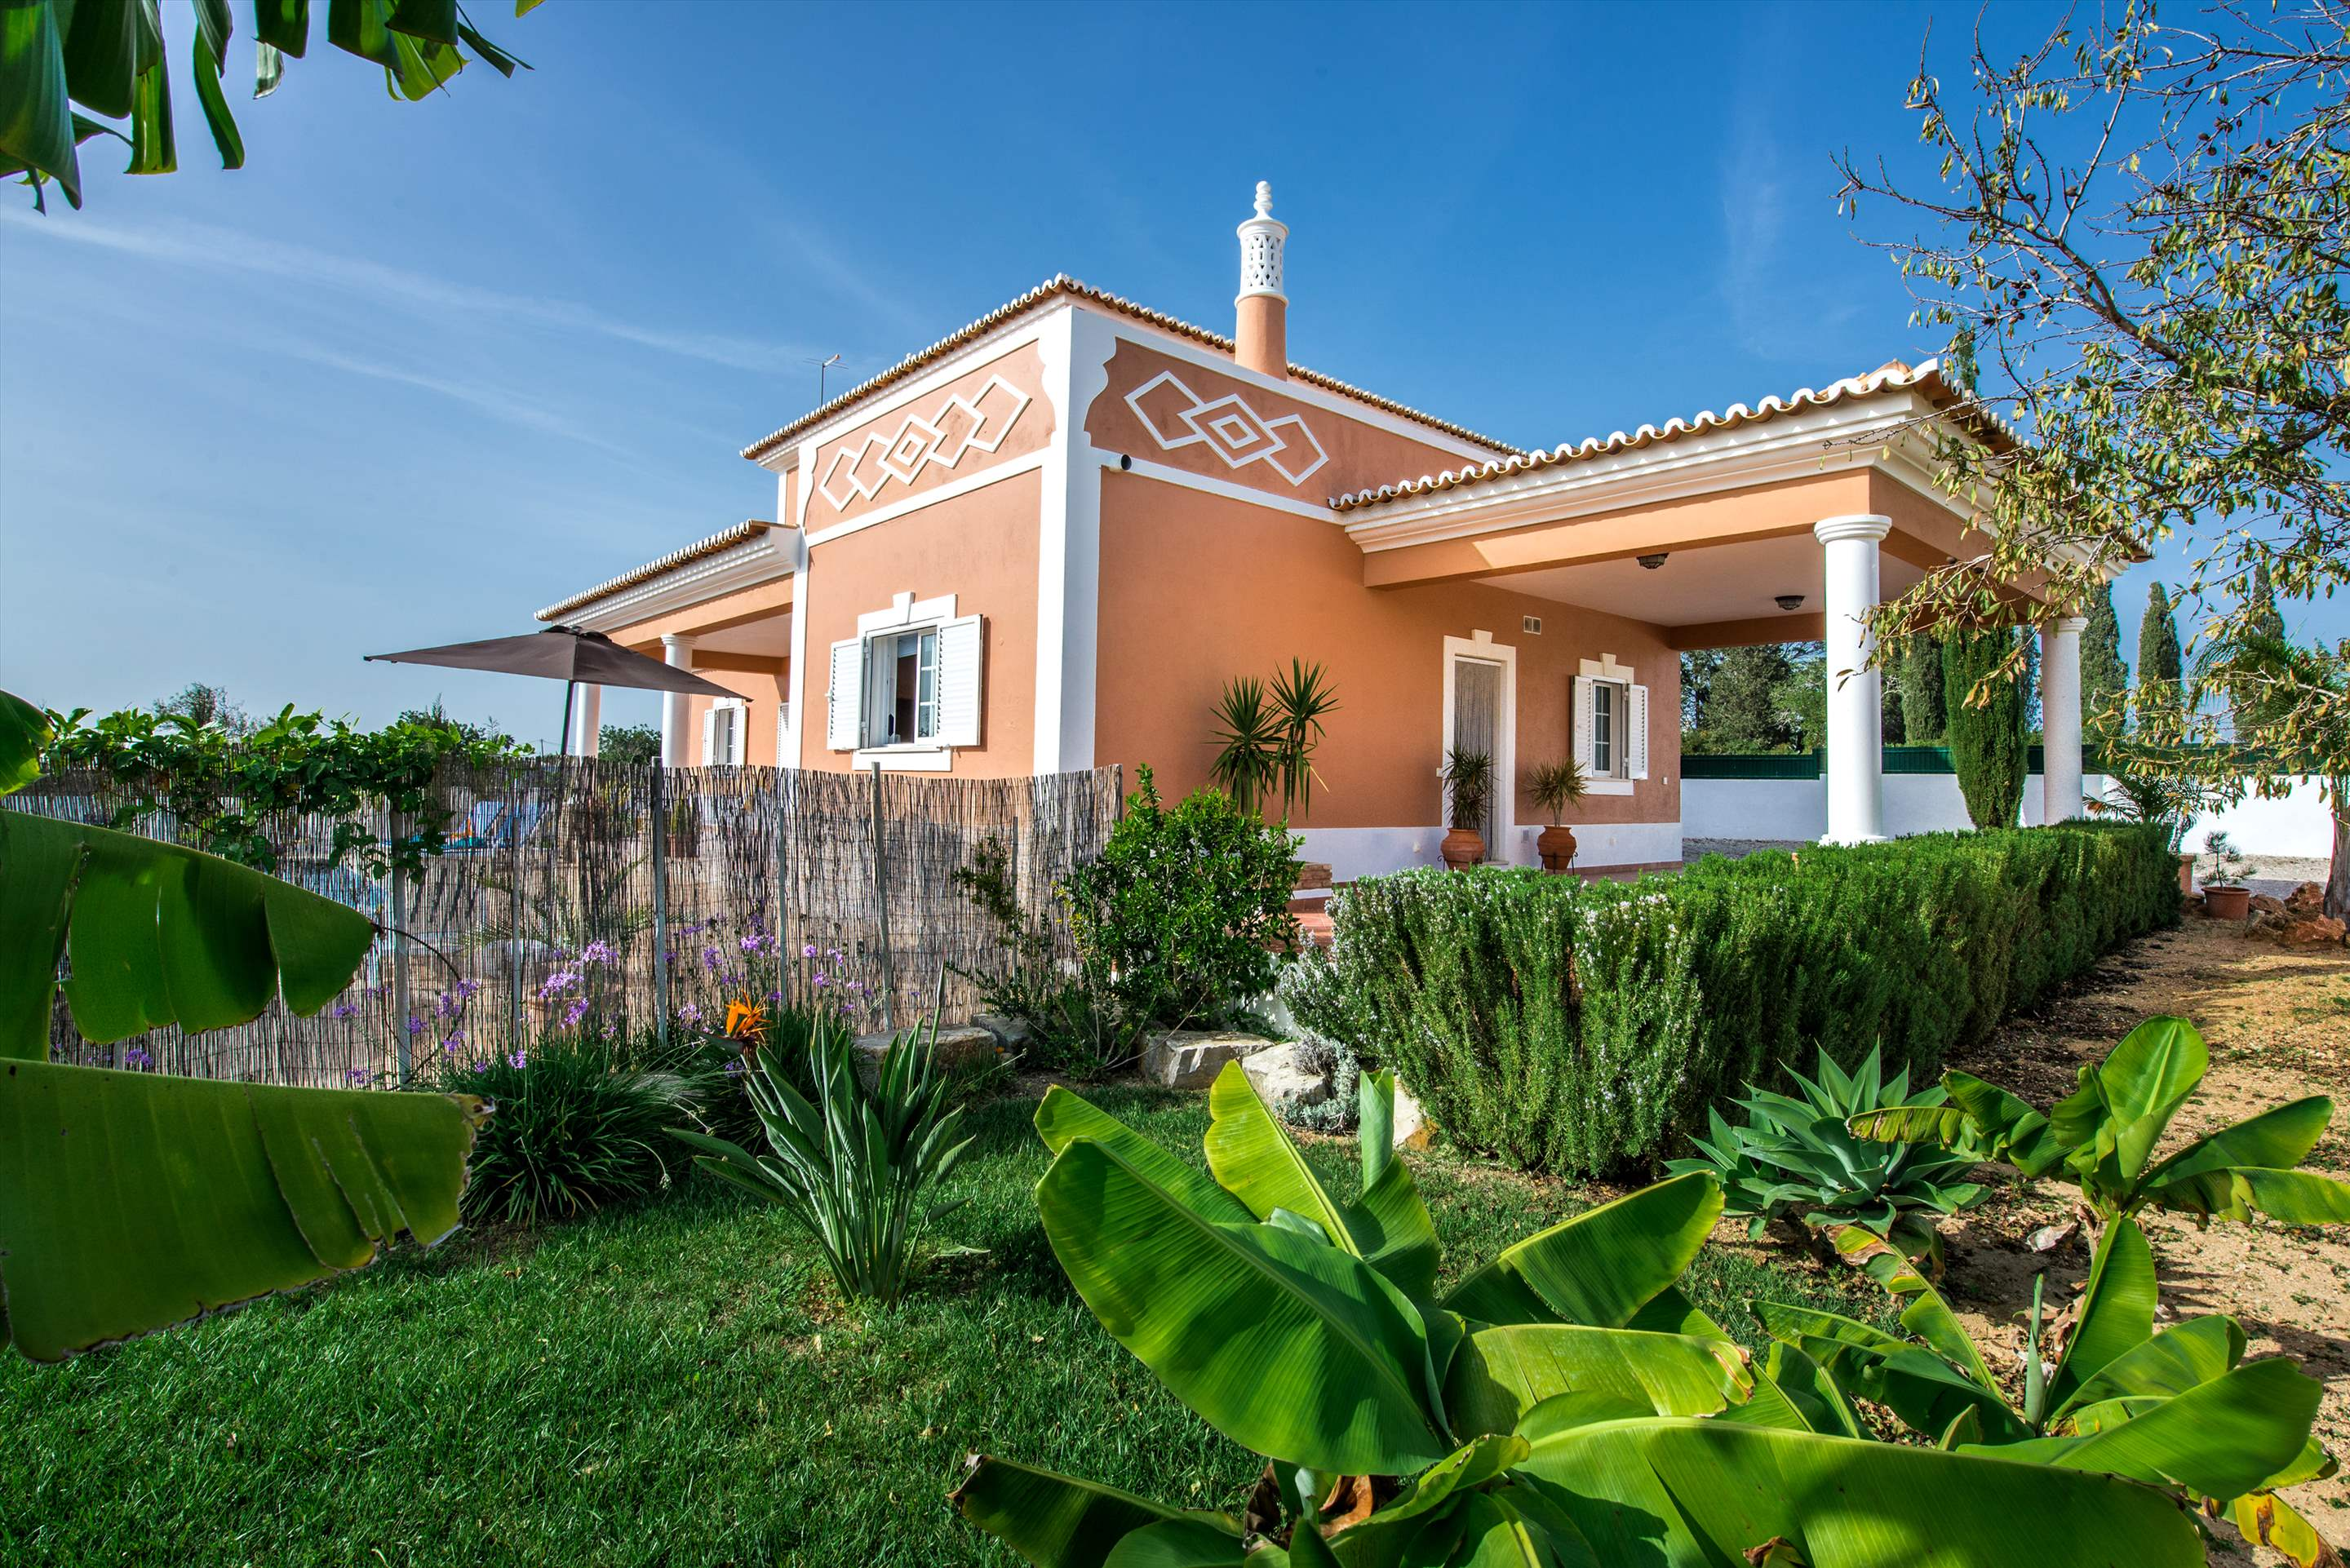 Casa Laura, 3 bedroom villa in Gale, Vale da Parra and Guia, Algarve Photo #26